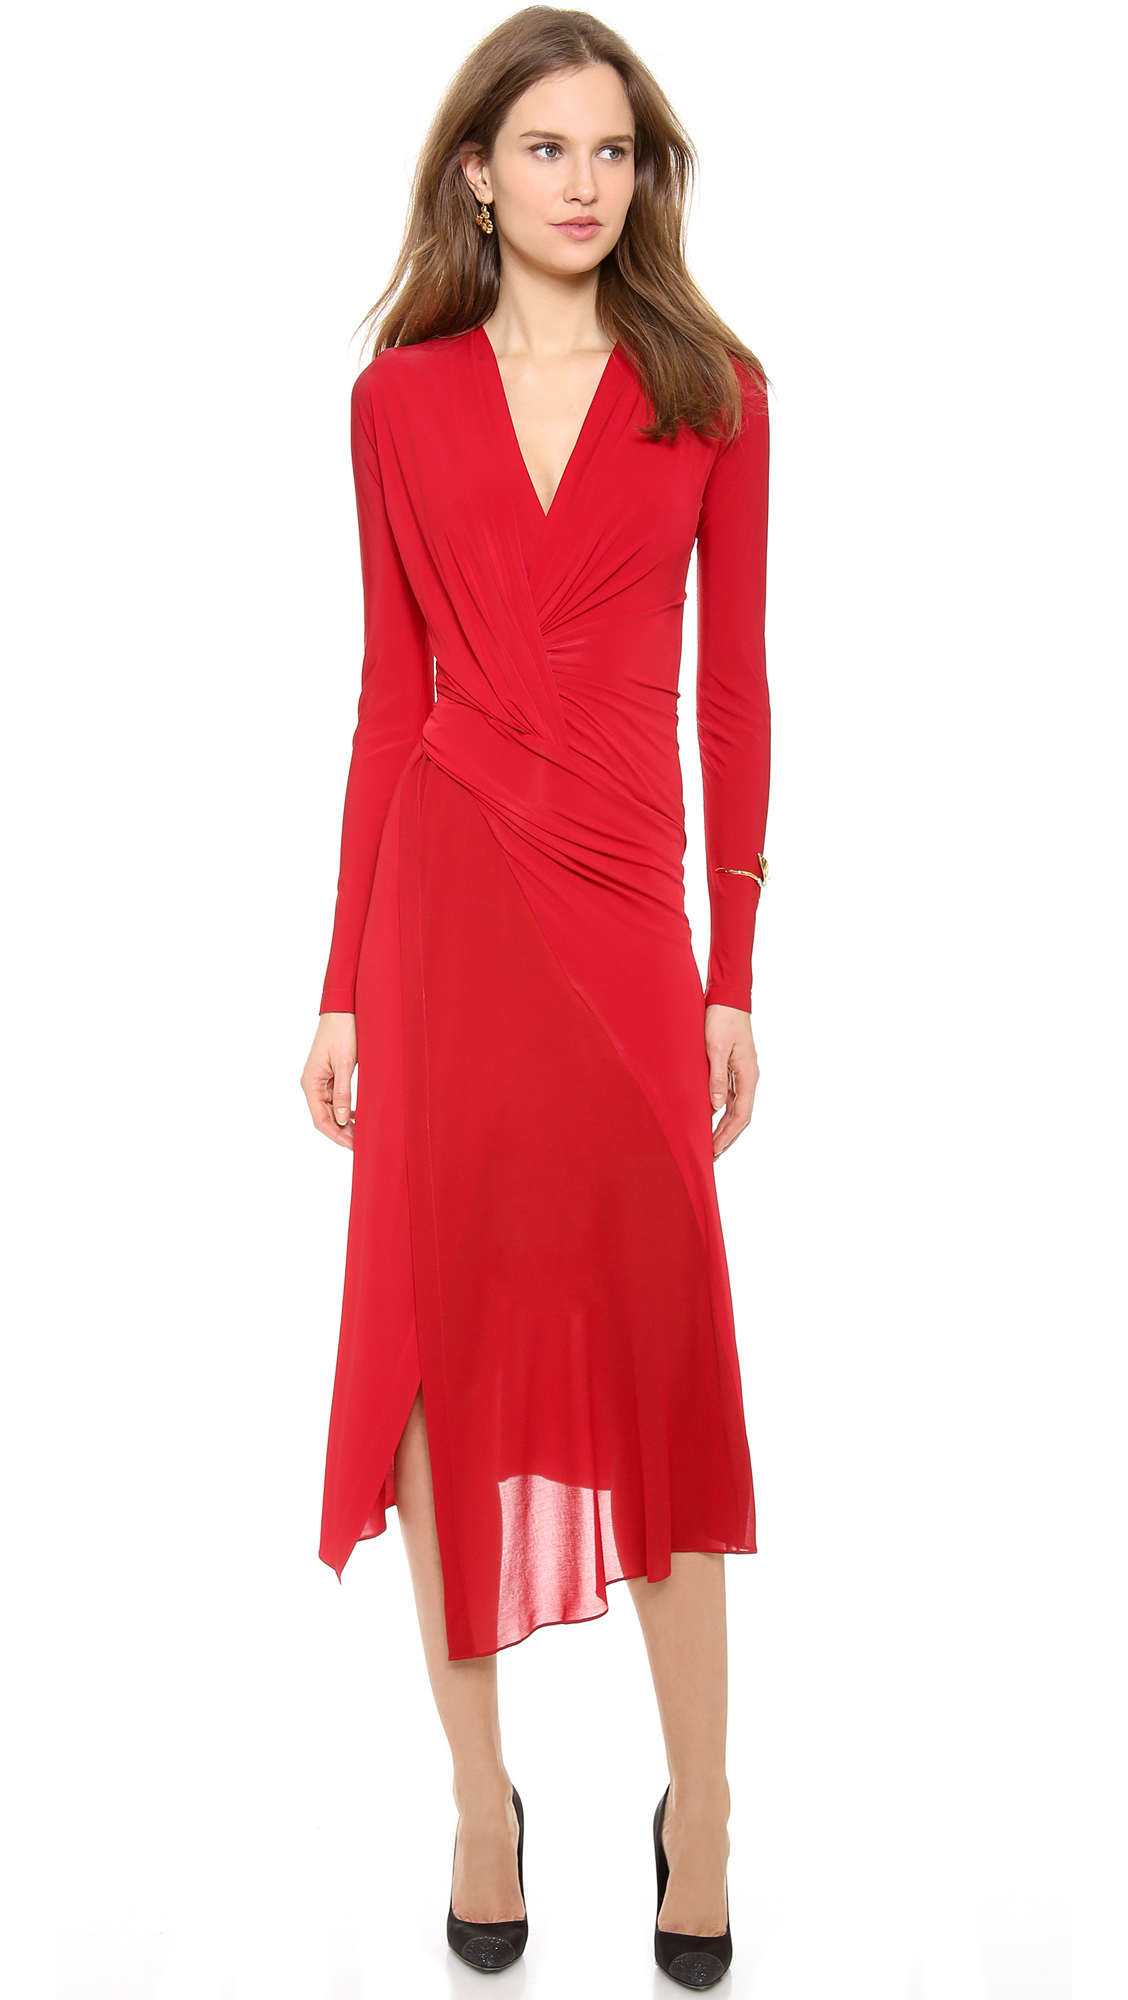 donna karan new york plunge v twist dress in red scarlet lyst. Black Bedroom Furniture Sets. Home Design Ideas